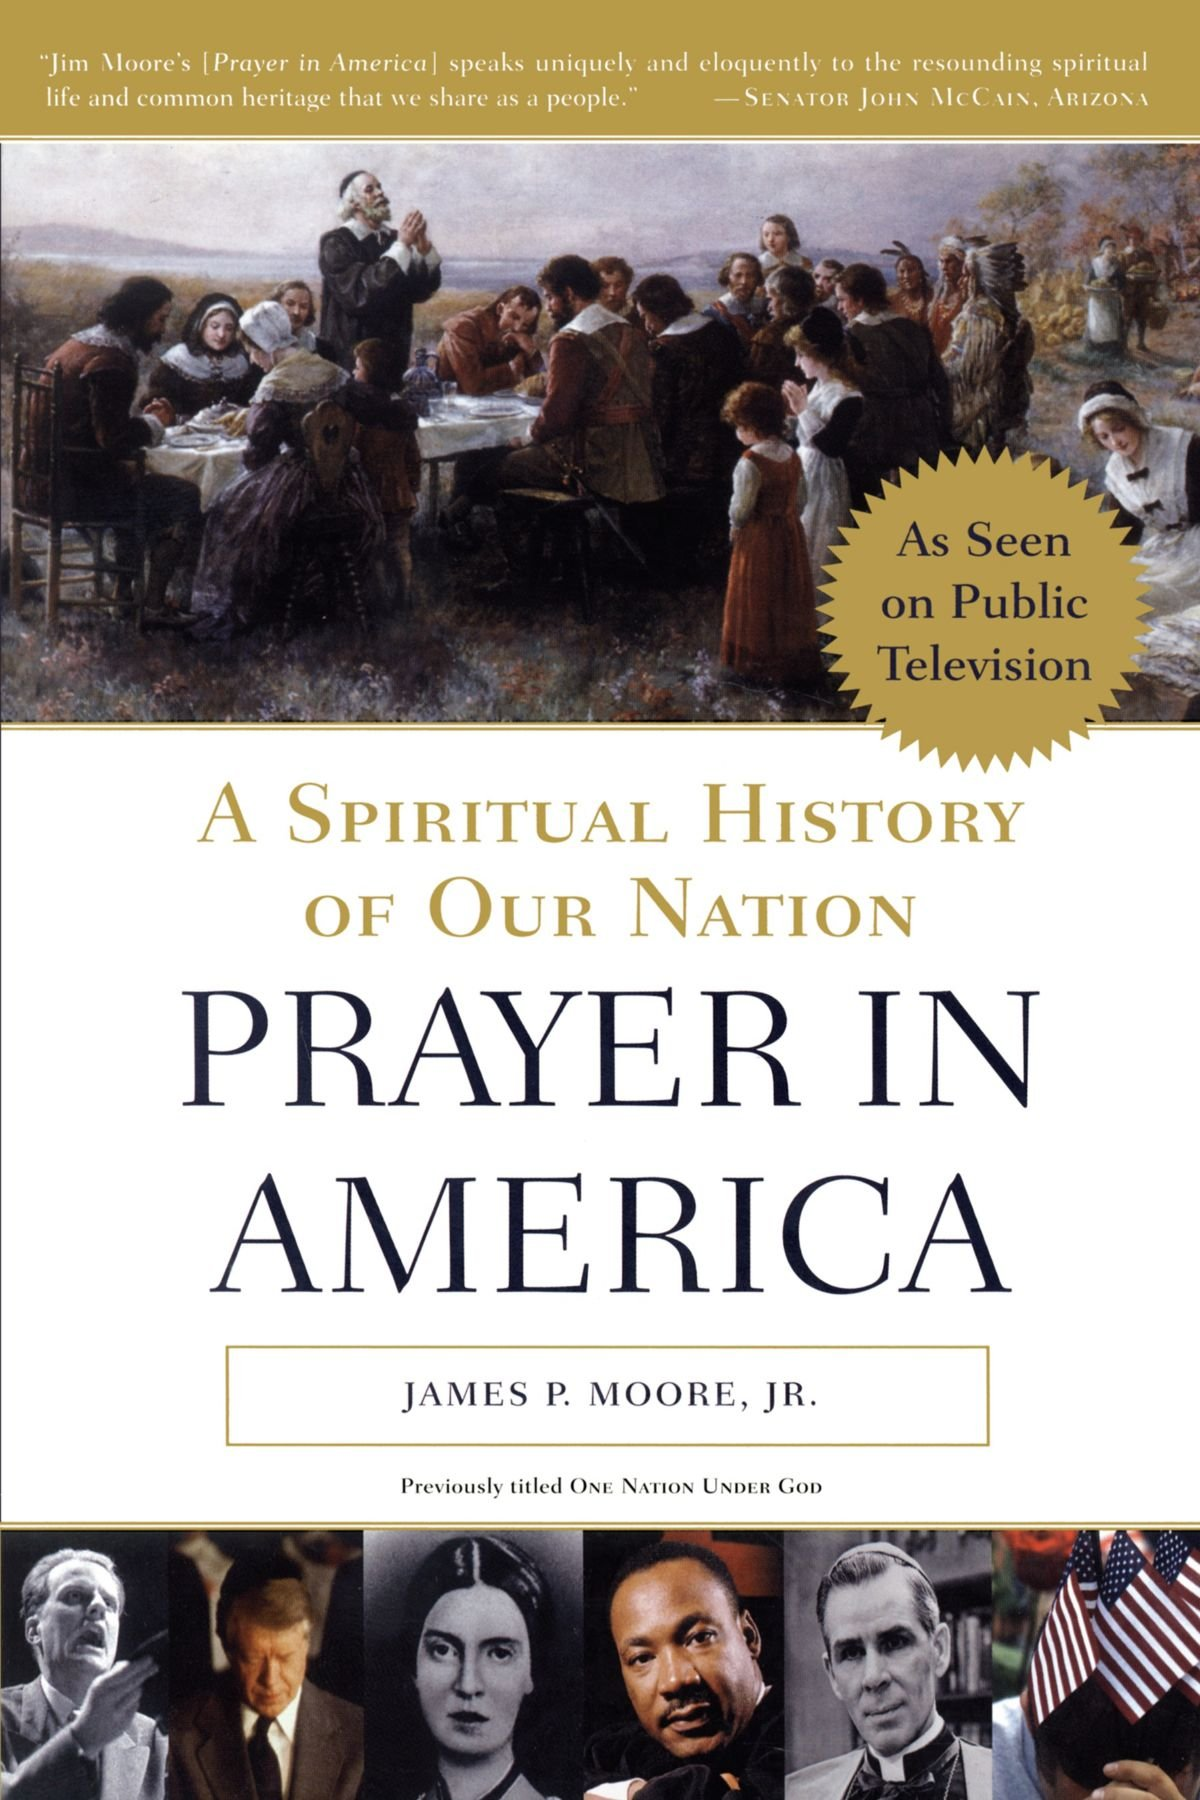 Prayer in America: A Spiritual History of Our Nation PDF